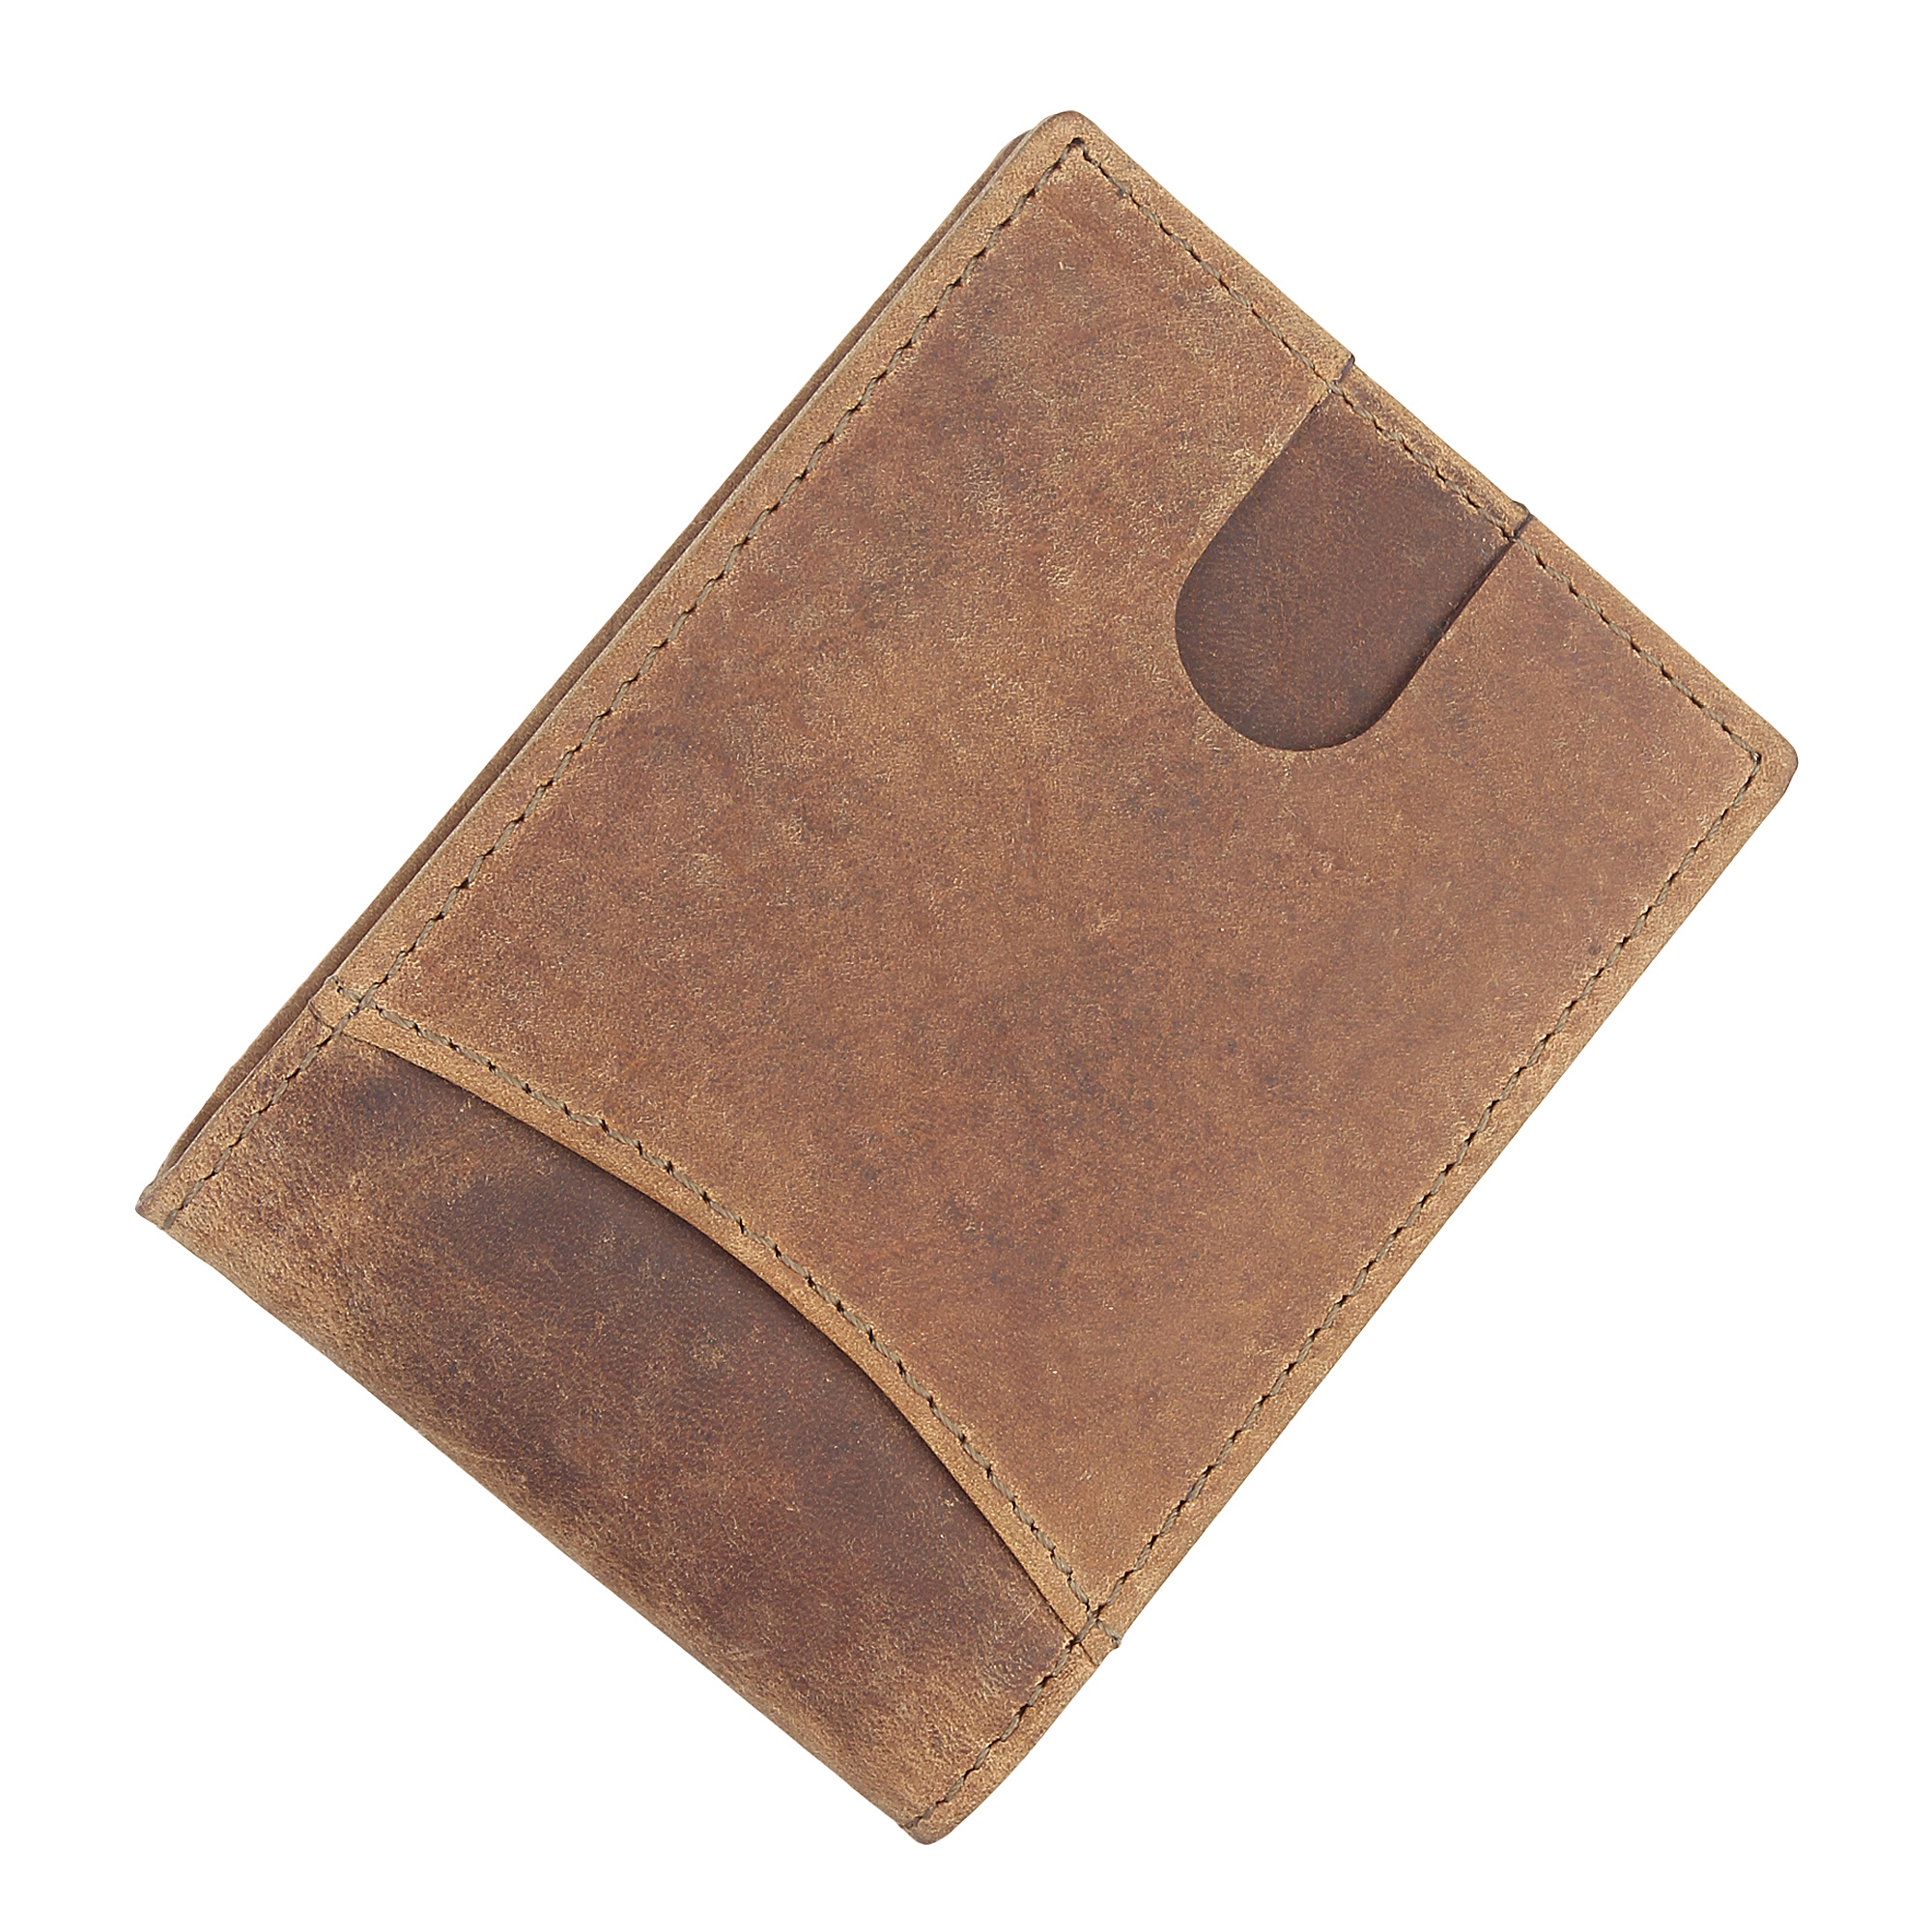 Leather Money Clip Wallet Manufacturers In Palermo, Money Clip Wallet Suppliers In Palermo, Money Clip Wallet Wholesalers In Palermo, Money Clip Wallet Traders In Palermo